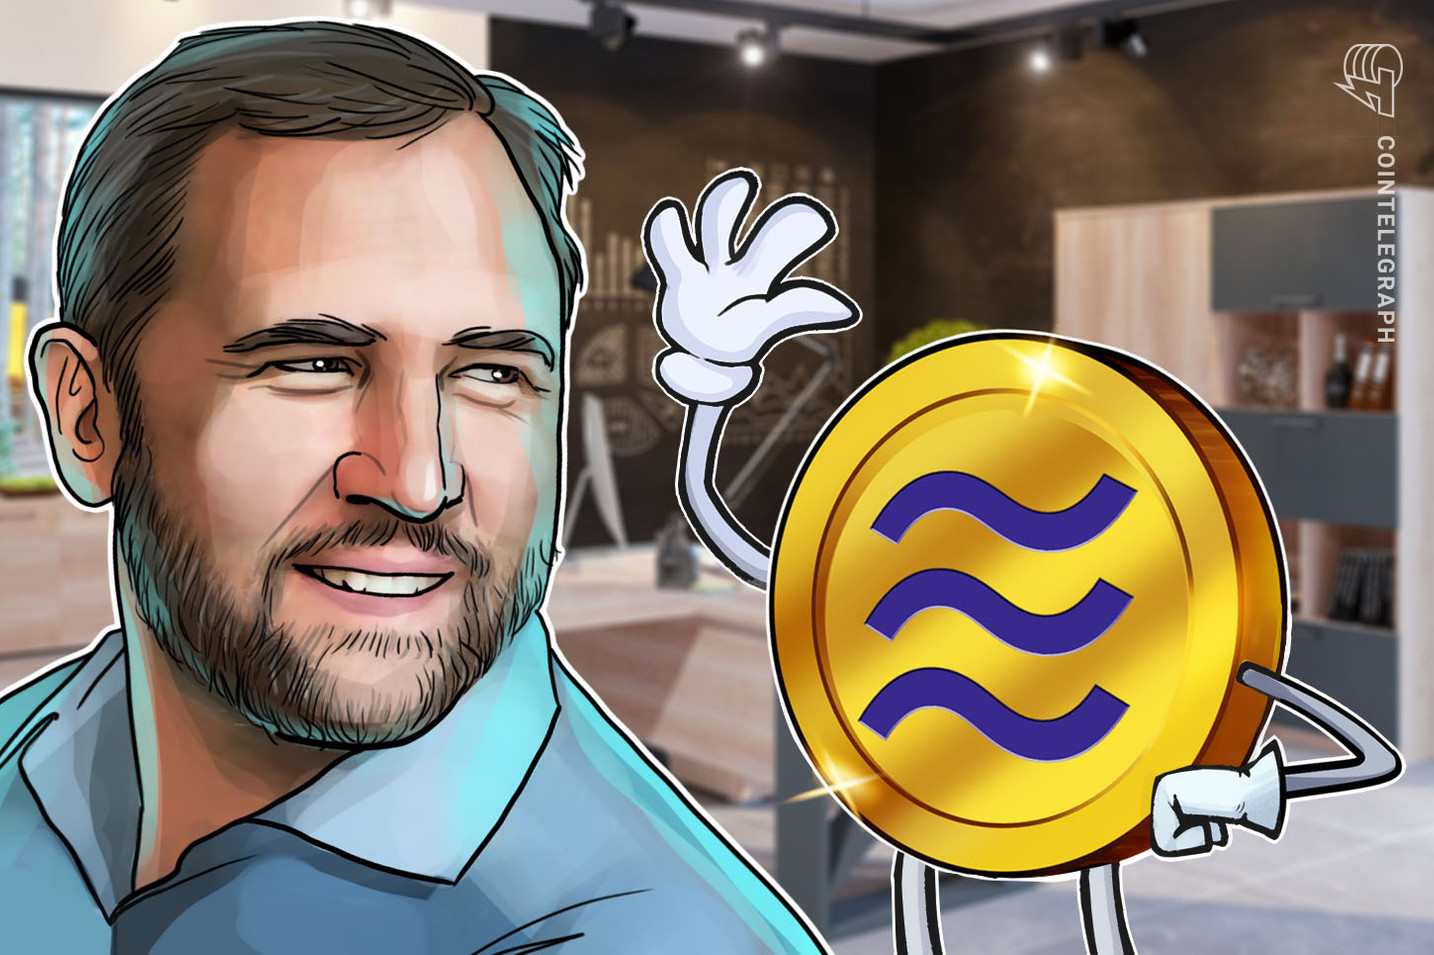 Ripple CEO Brad Garlinghouse Concerned About Effects of Facebook's Libra